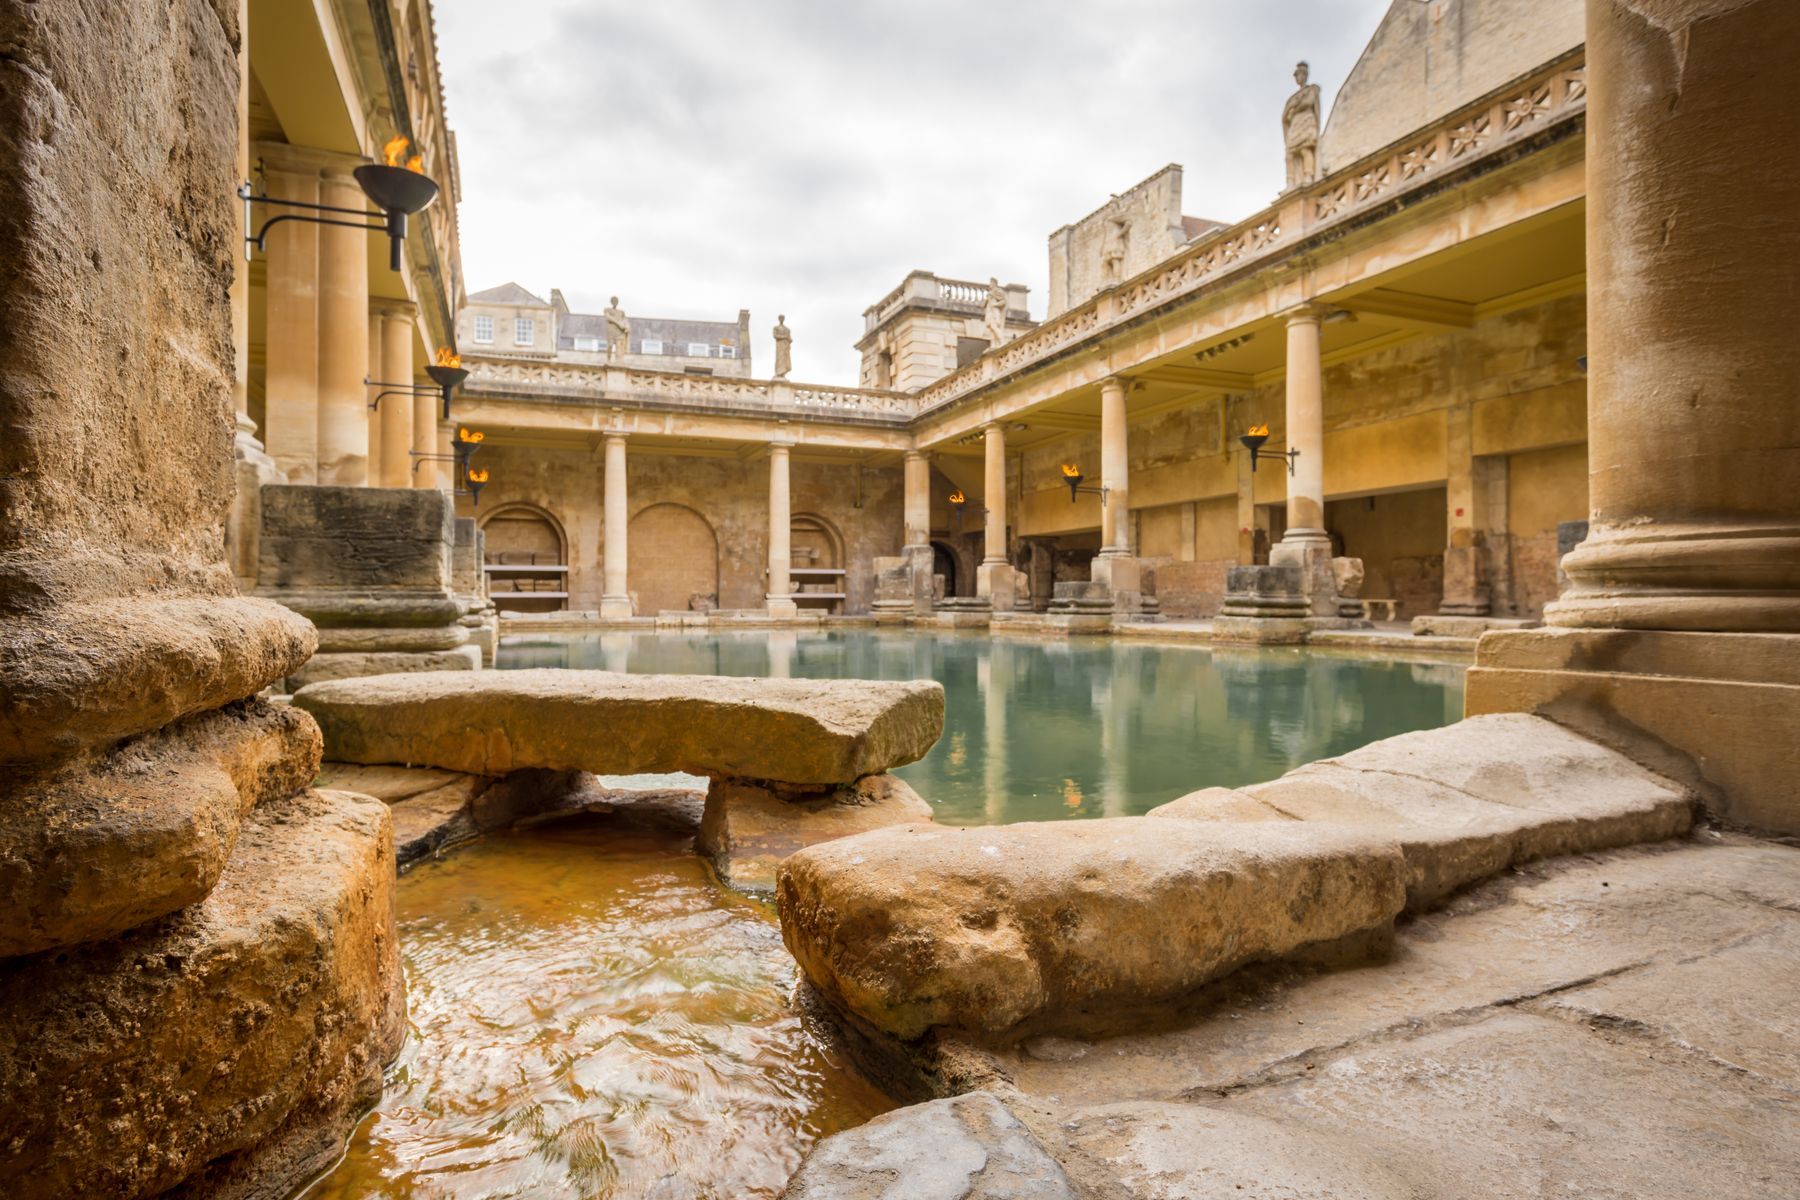 The Roman Baths in Bath, UK